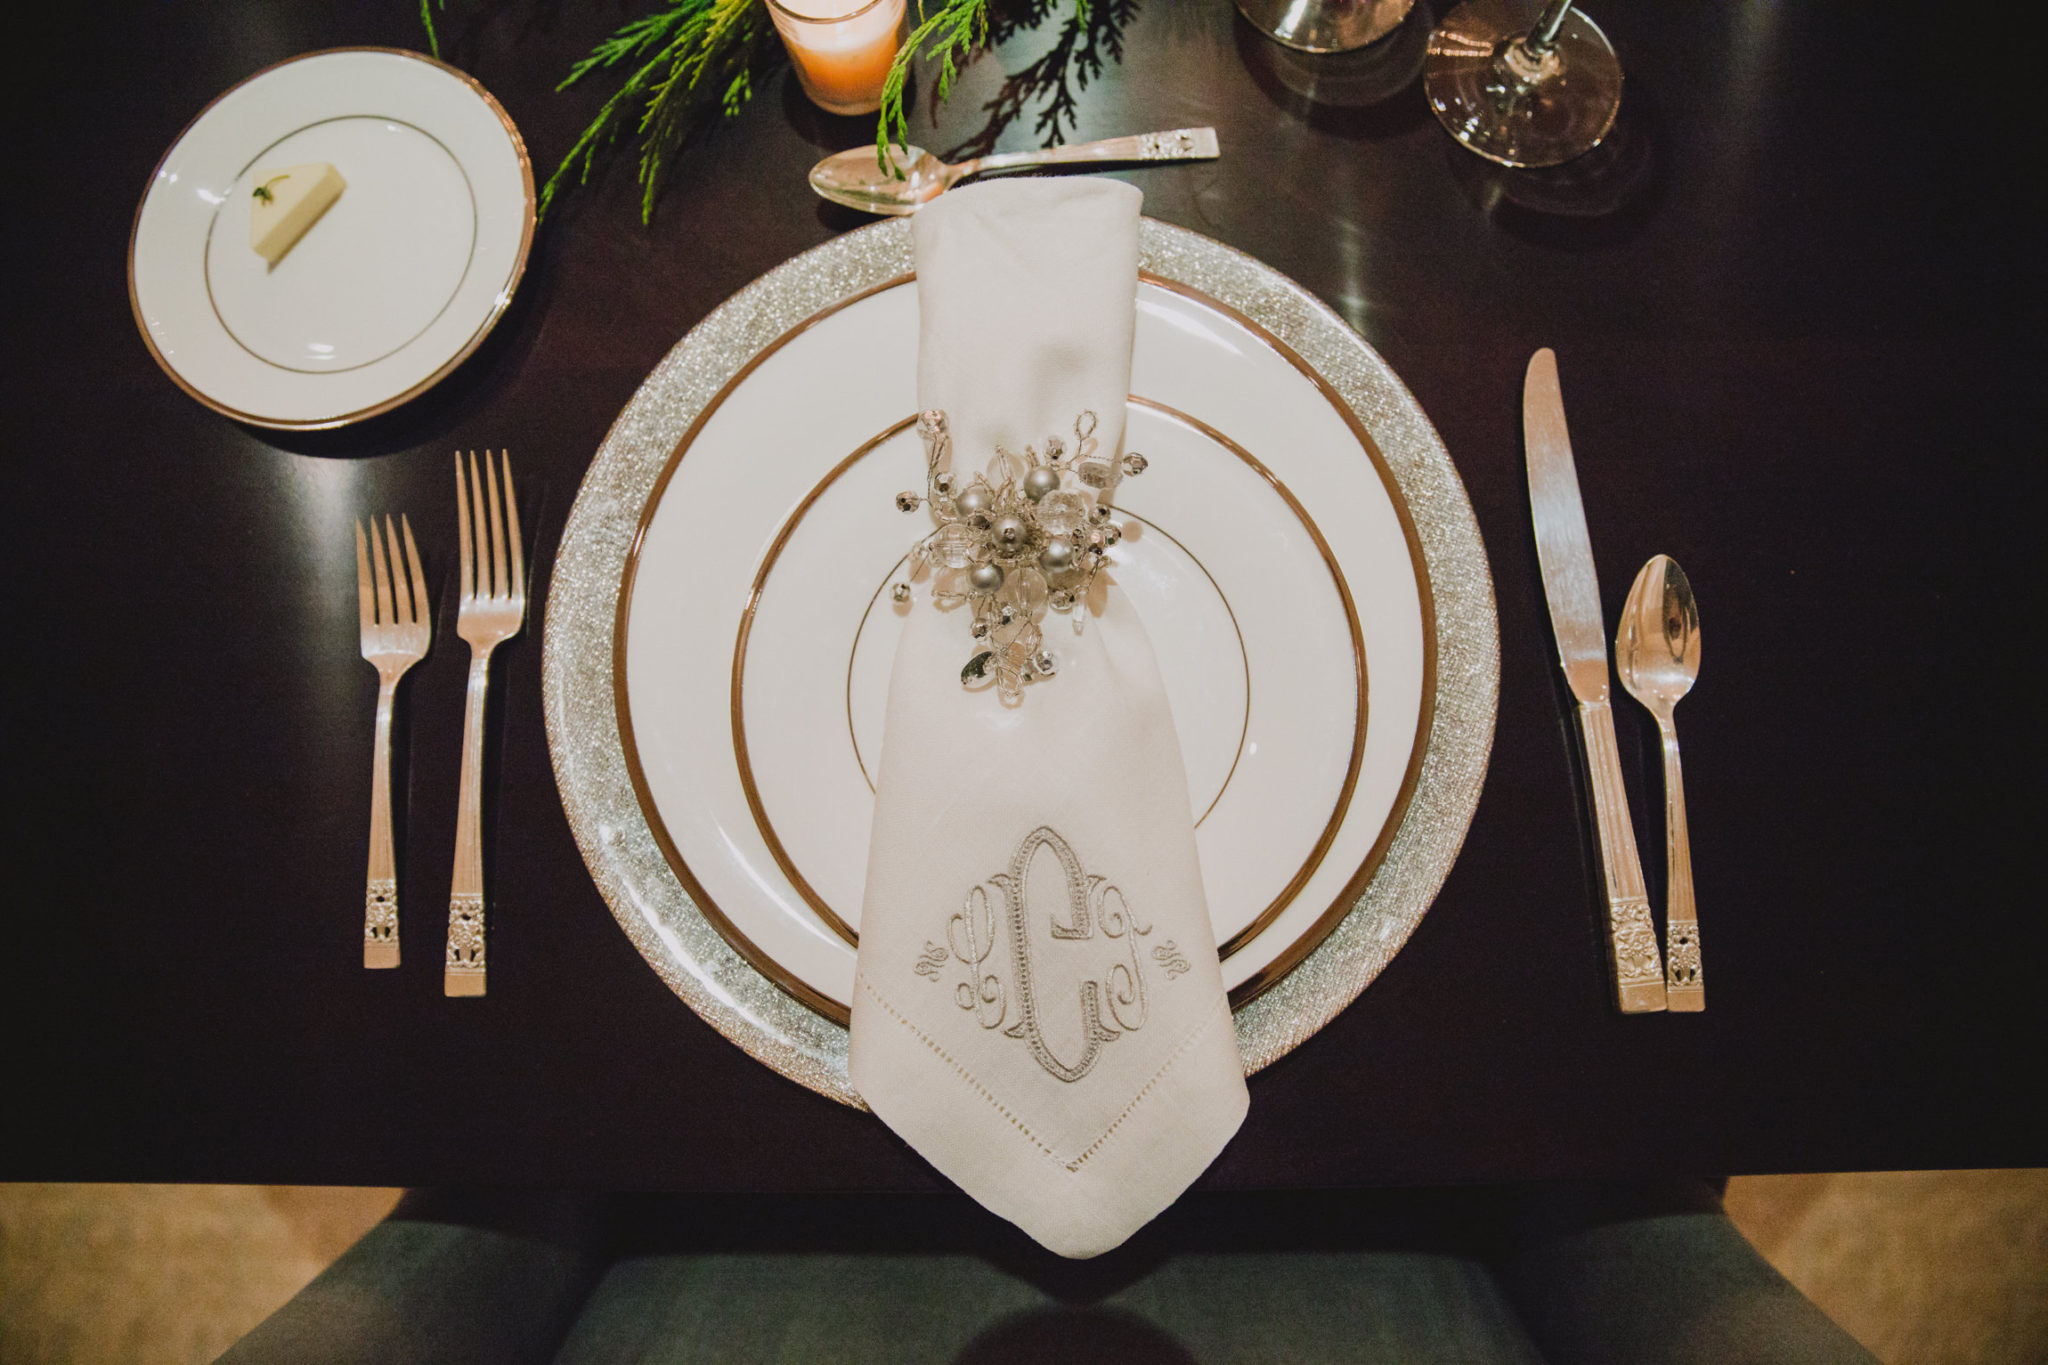 luxurious Christmas dinner place setting